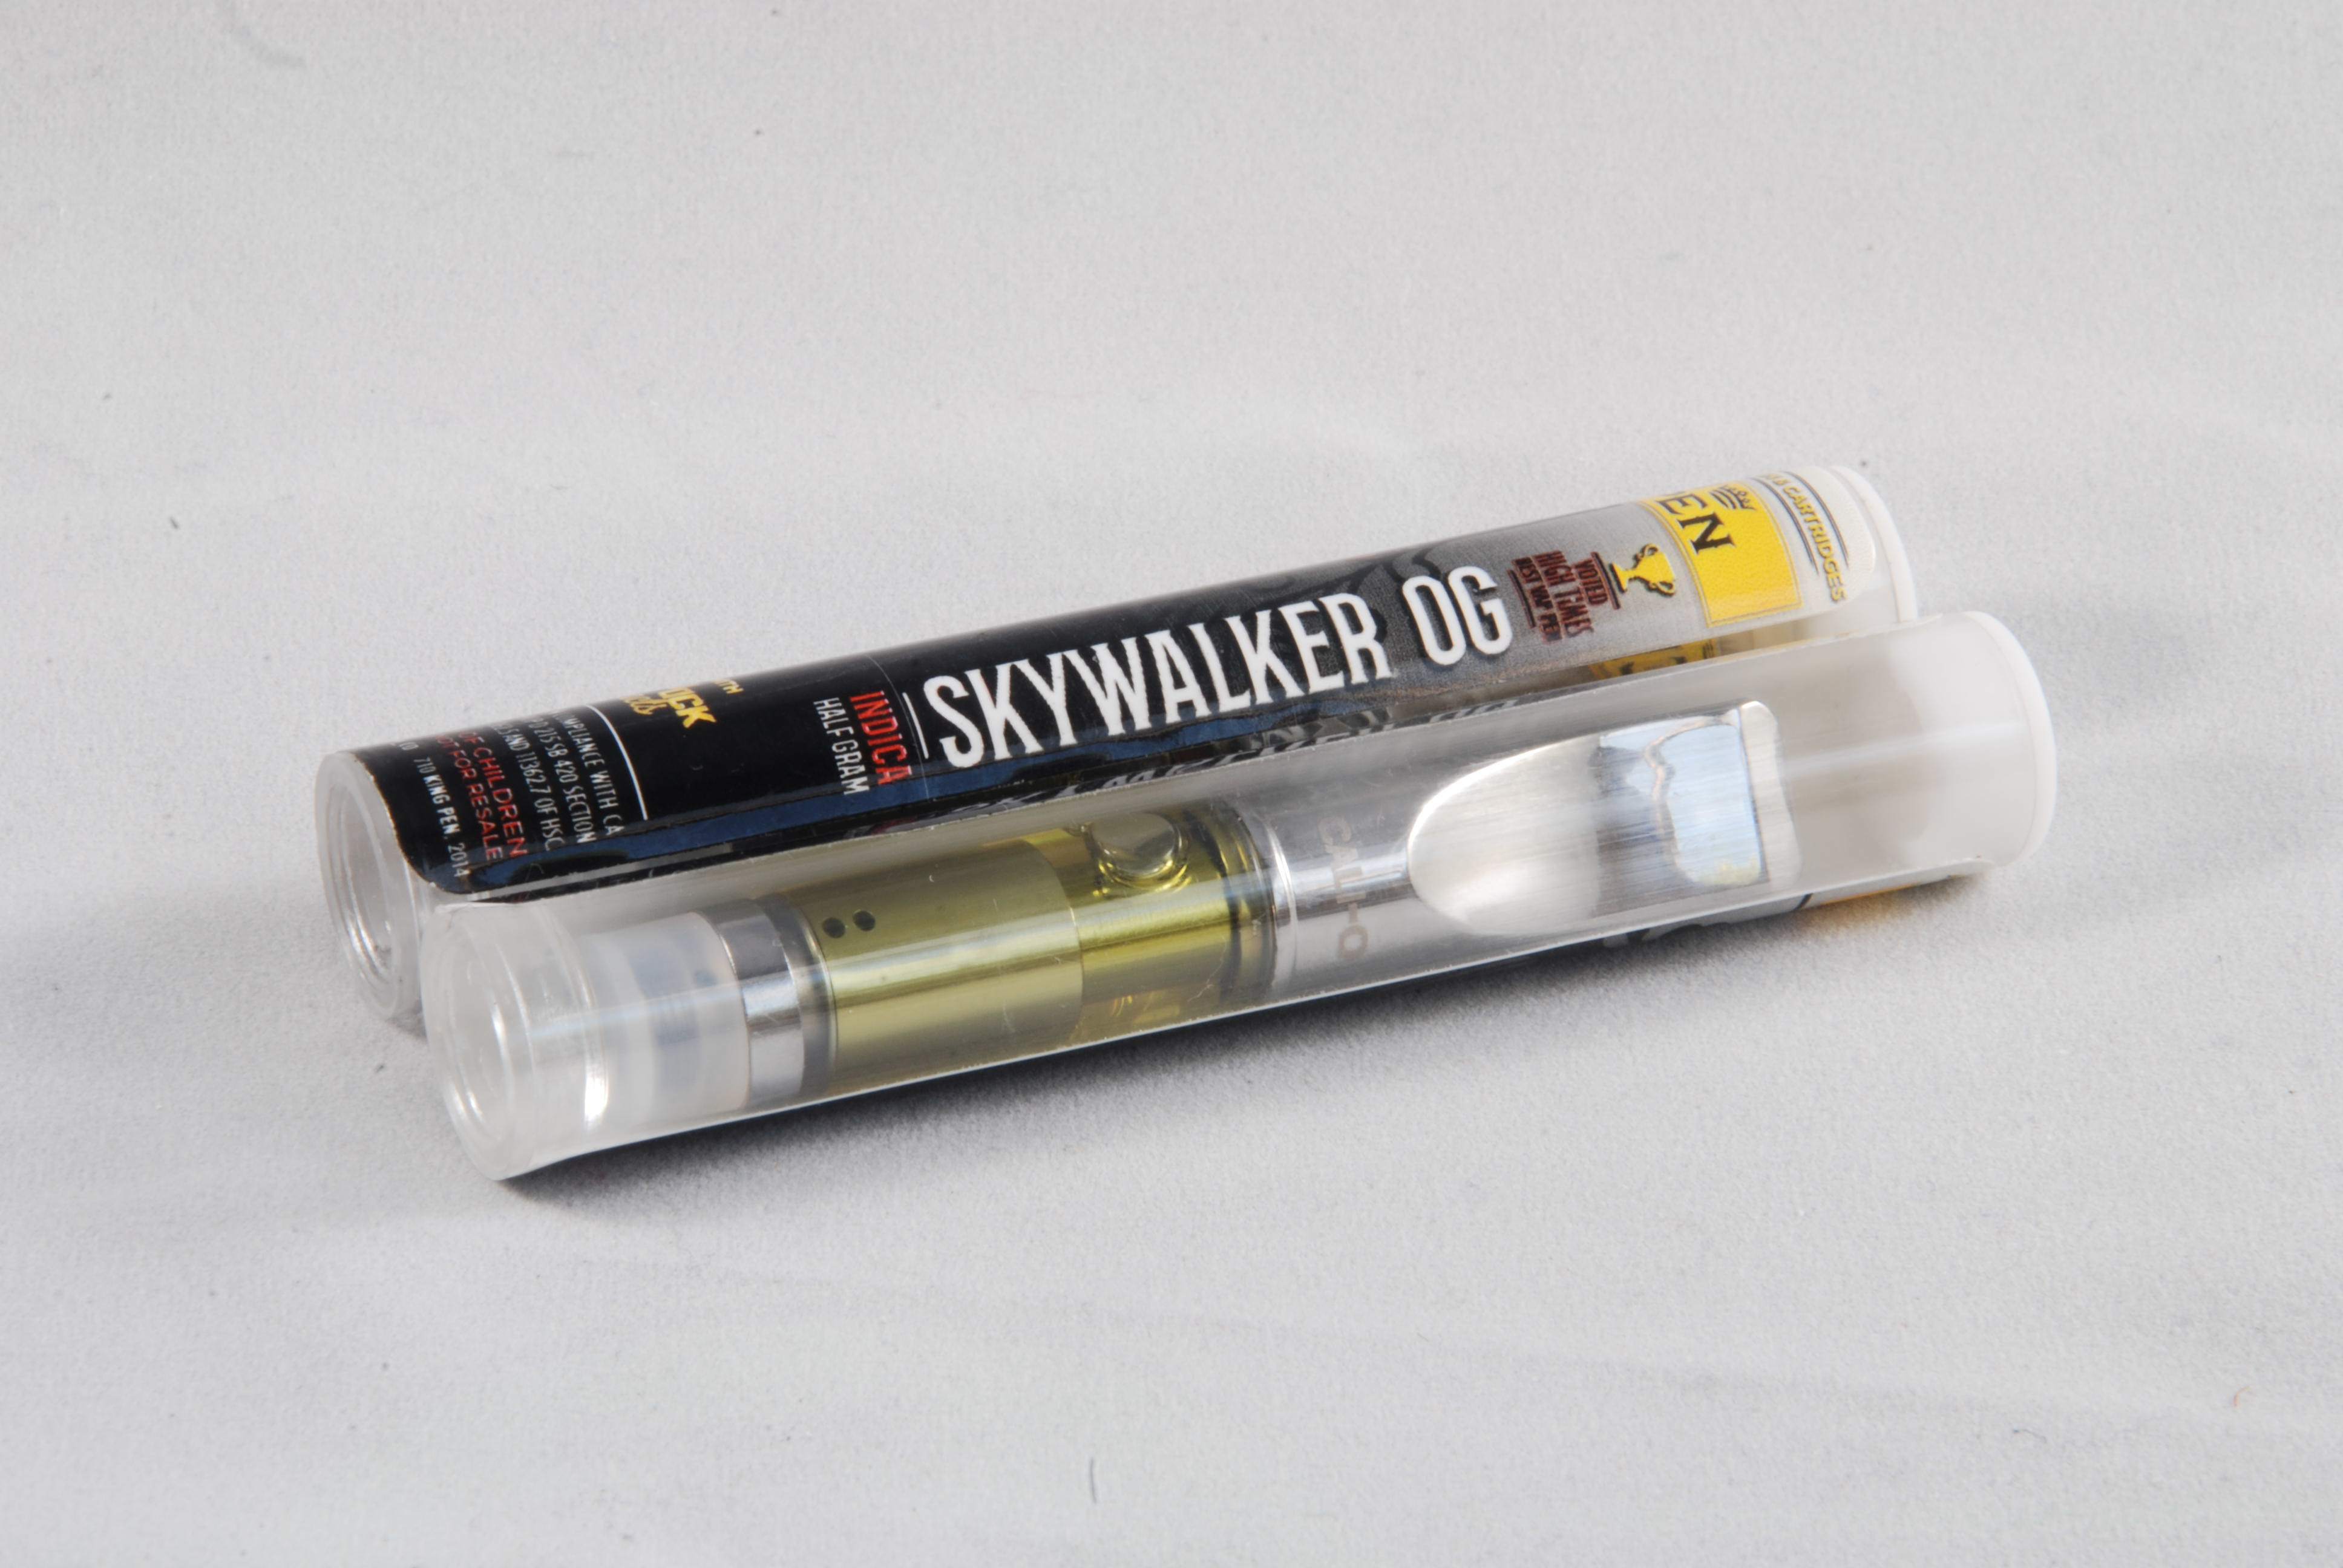 710 Kingpen Skywalker OG Cartridge